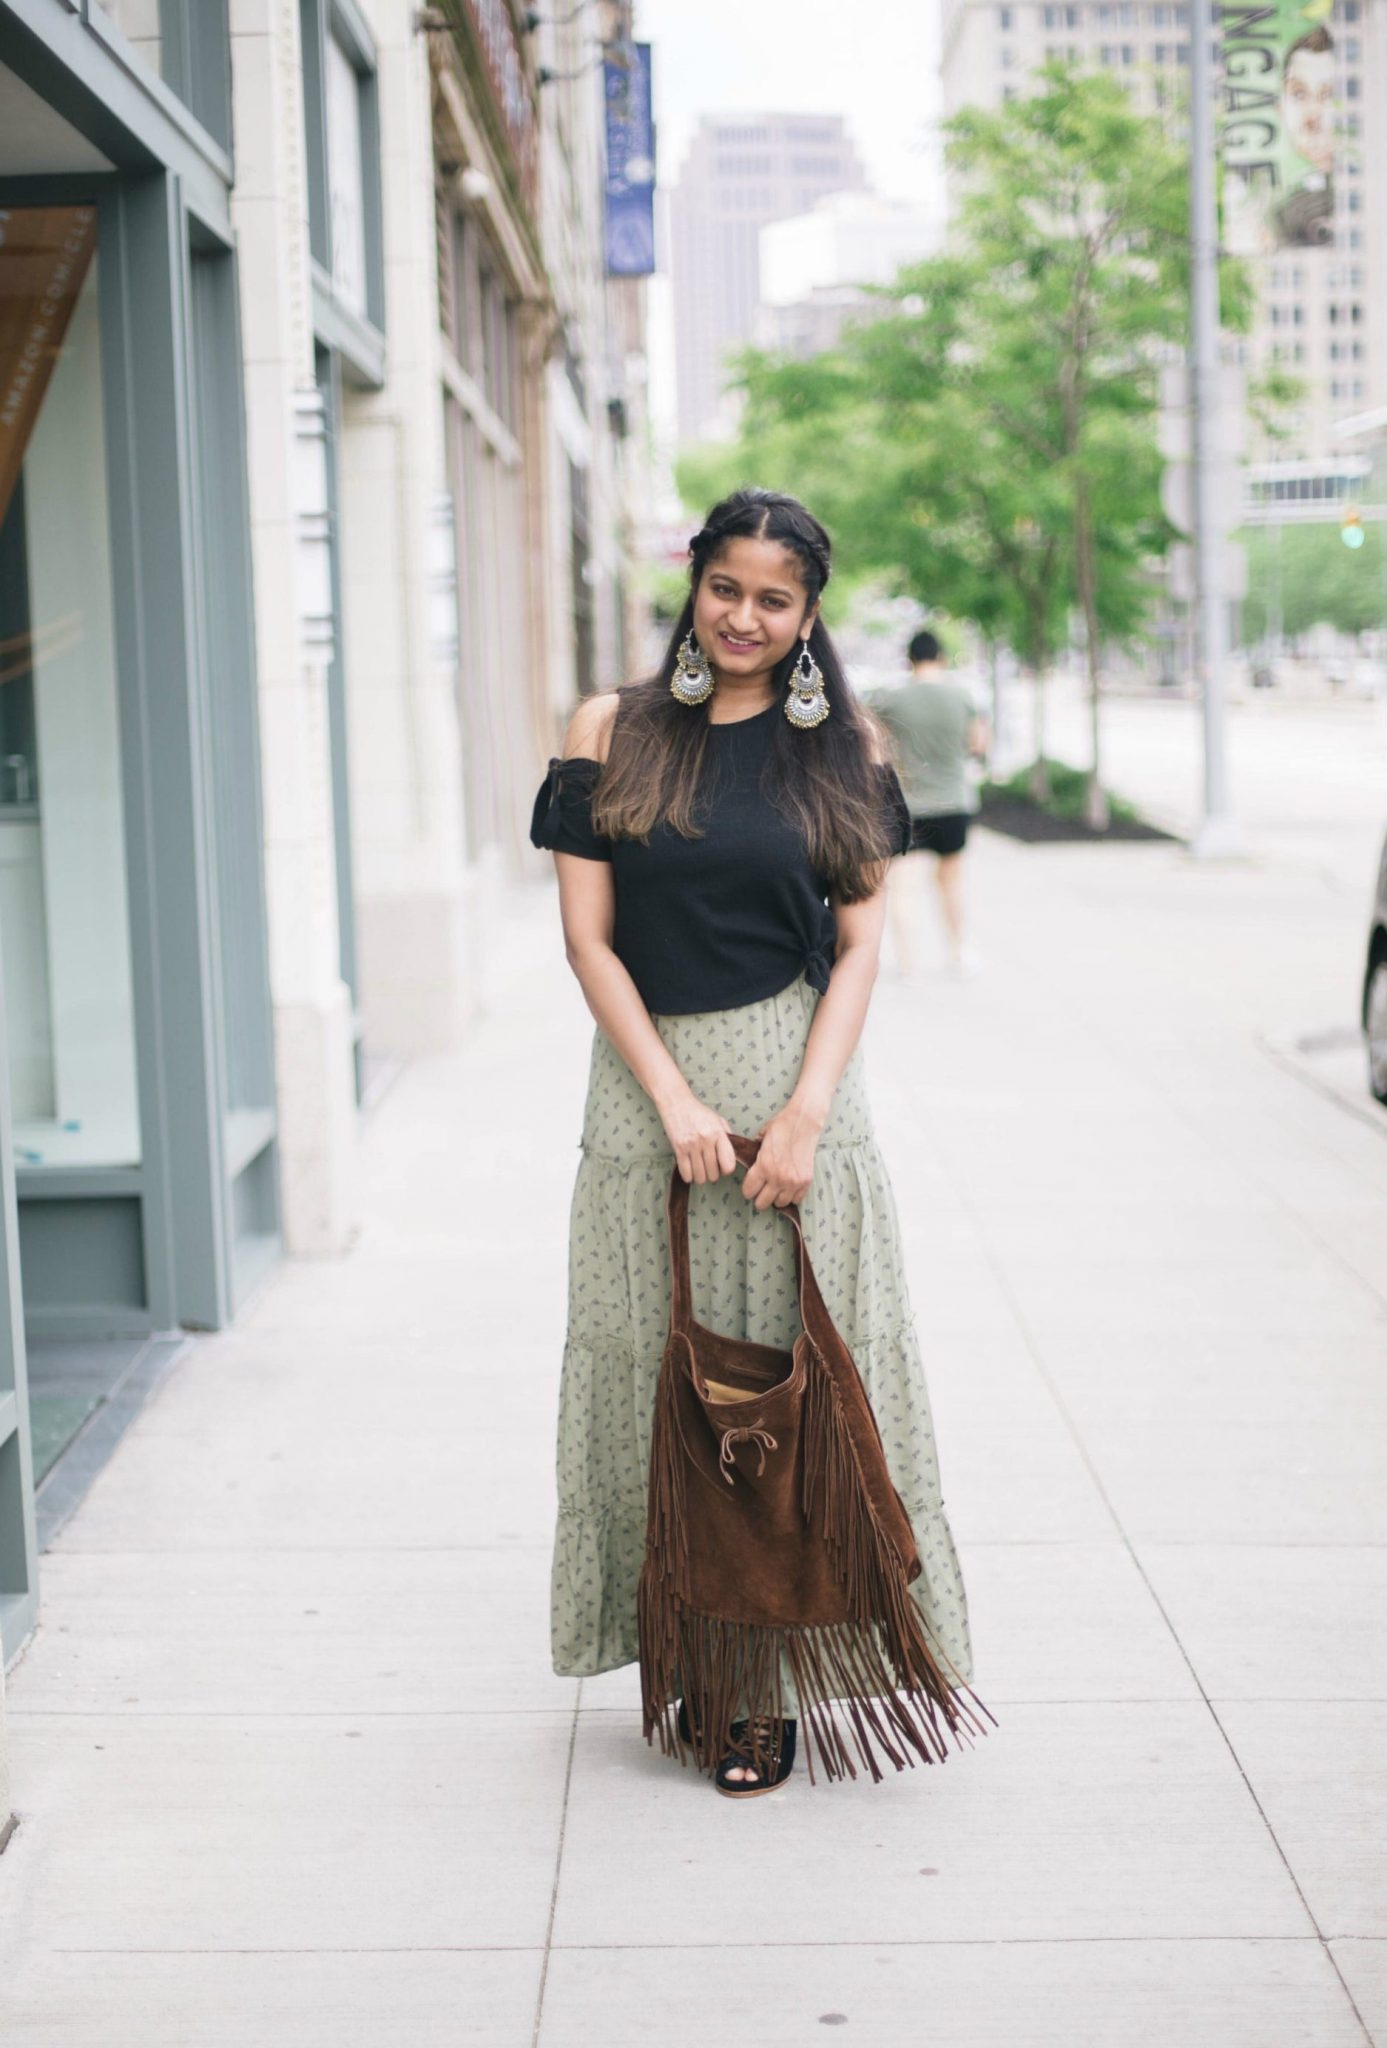 tips-to-wear-maxi-skirt-for-petites - Maxi Skirts For Petites featured by popular Ohio modest fashion blogger, Dreaming Loud